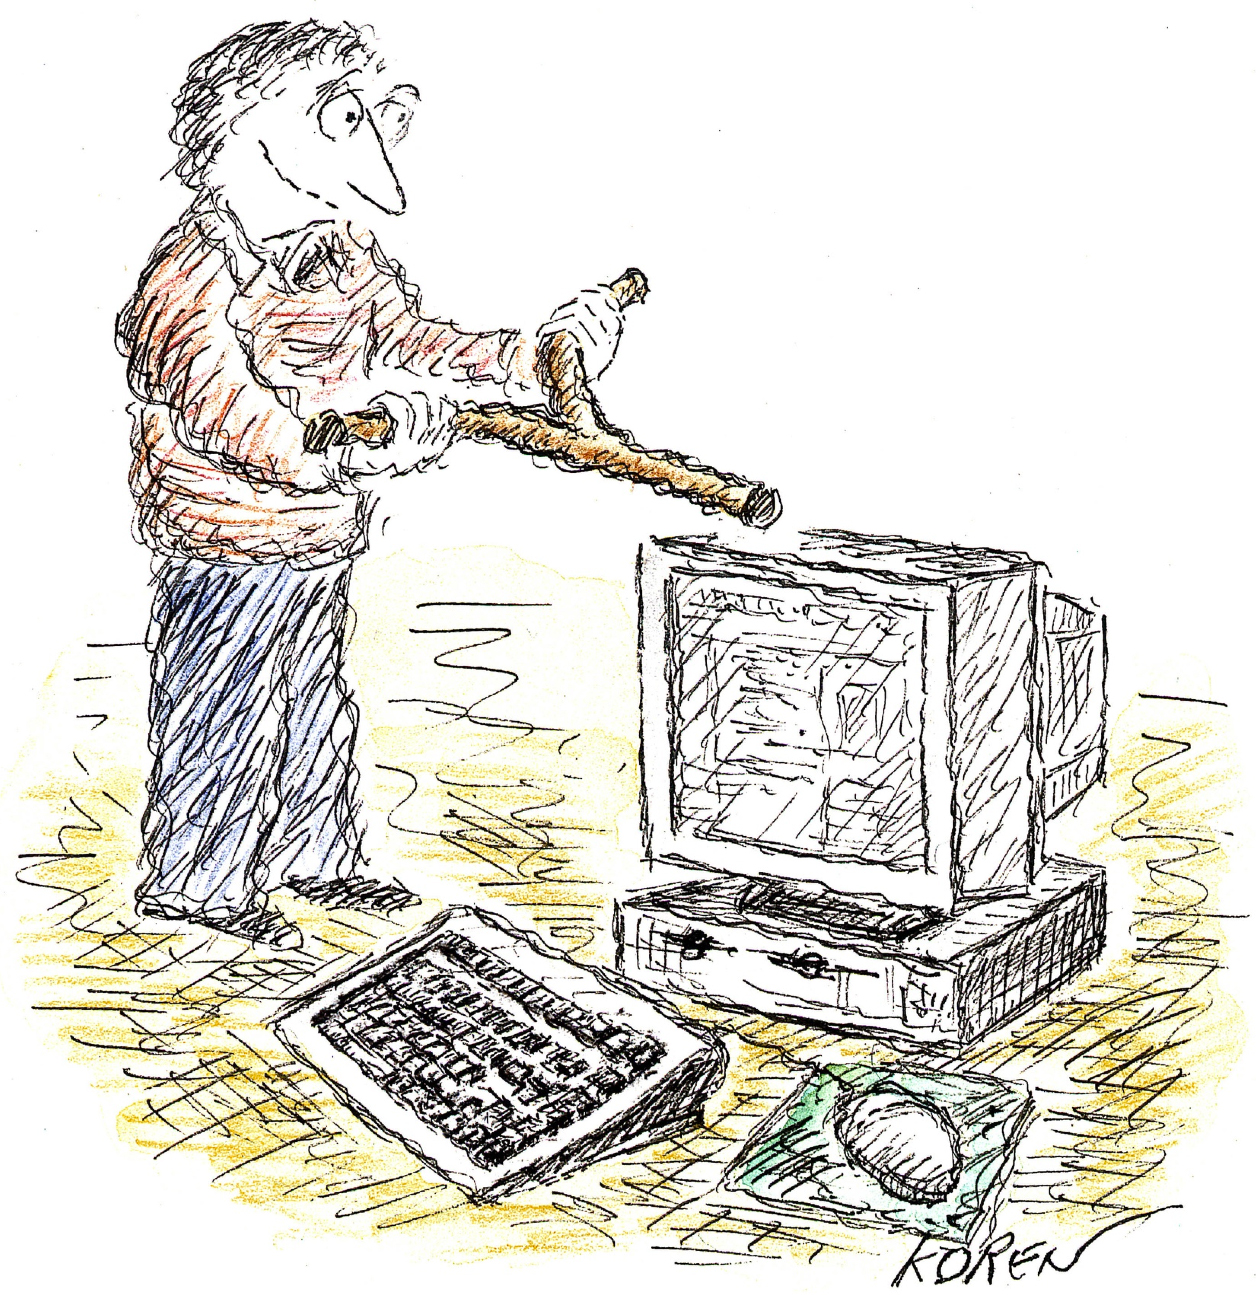 Illustration of a man using a defining rod on a computer